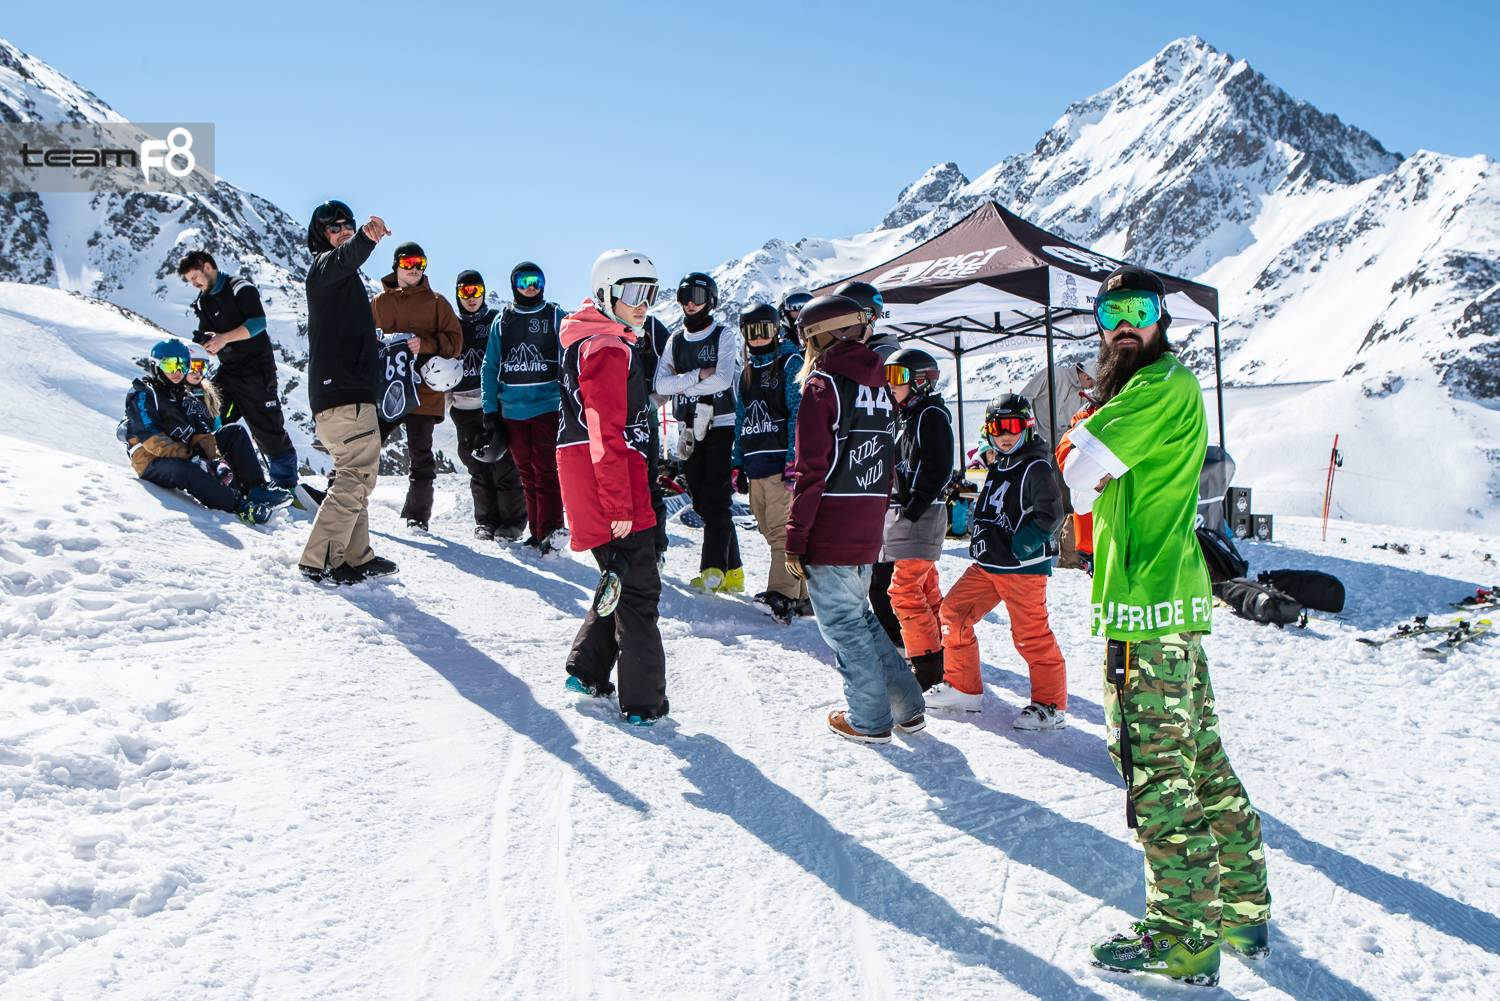 wild_kühtai_jam_shredlife_tour_30032019_photo_team_f8_andreas_mohaupt_025